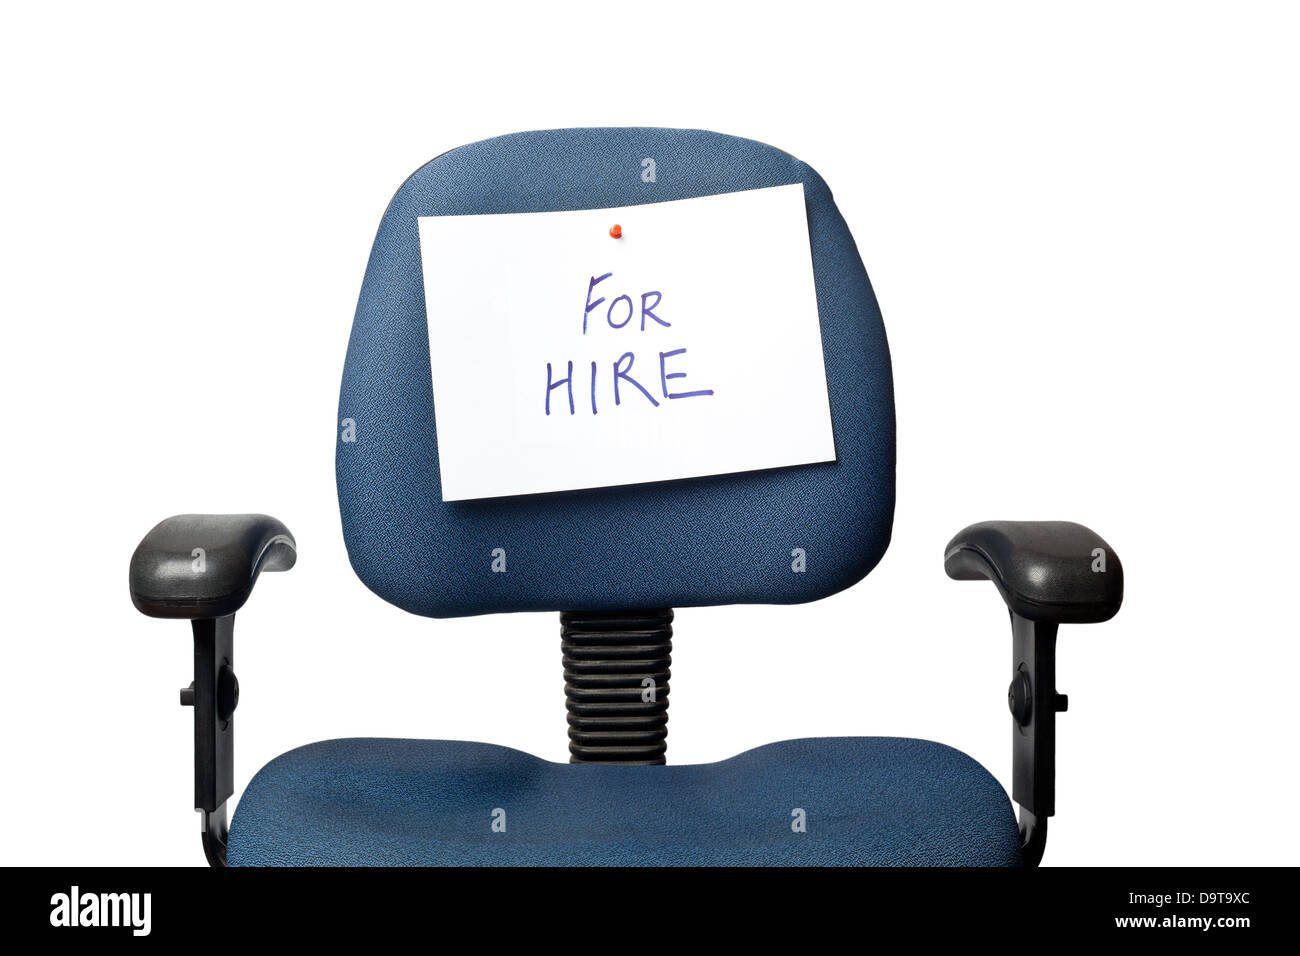 Office chair with a FOR HIRE sign isolated on white background - Stock Image